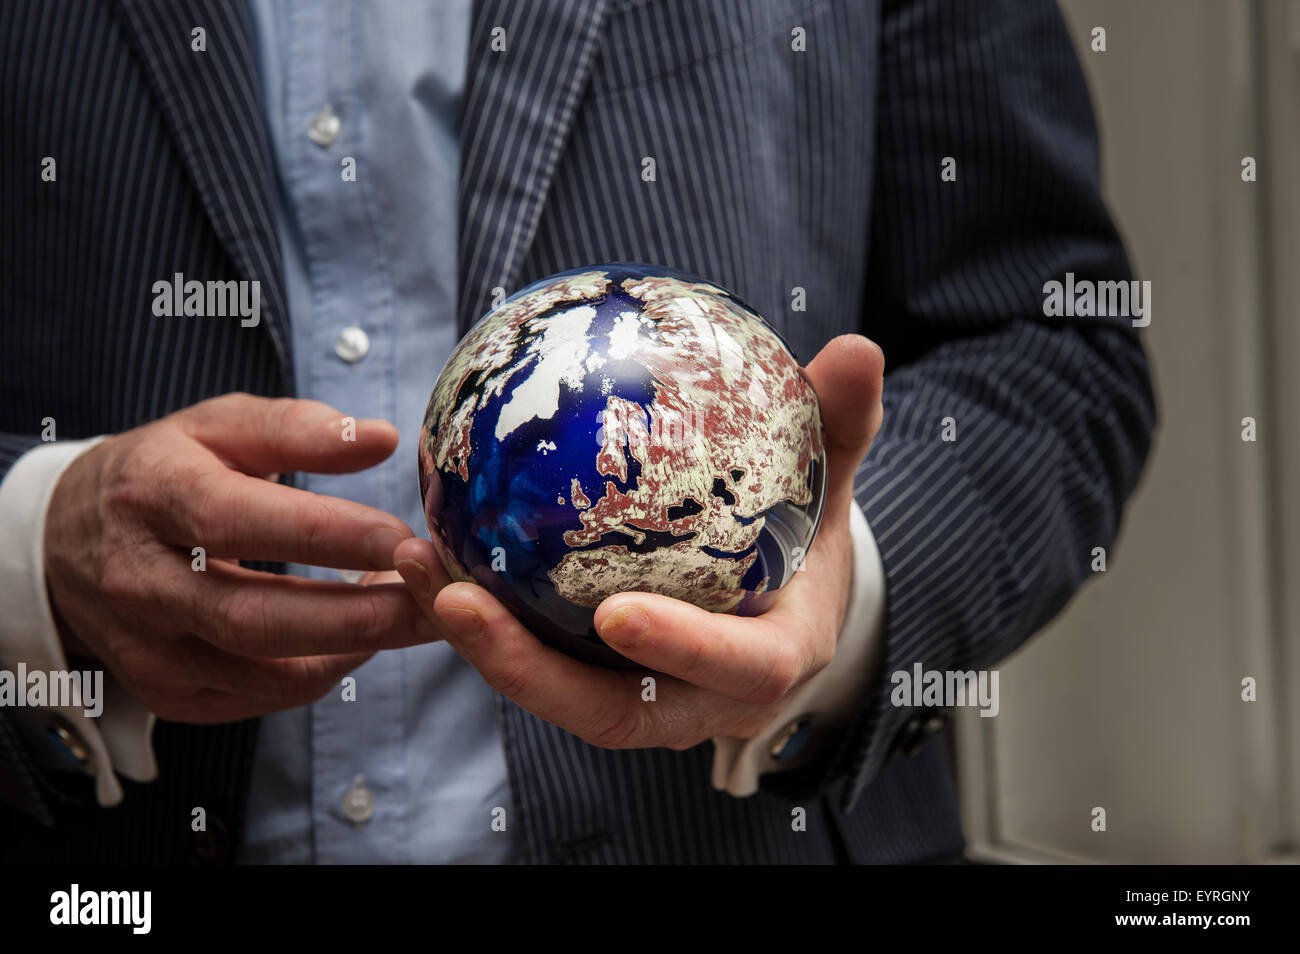 London, England. Businessman holding a globe of the Earth made of semi-precious stones. - Stock Image